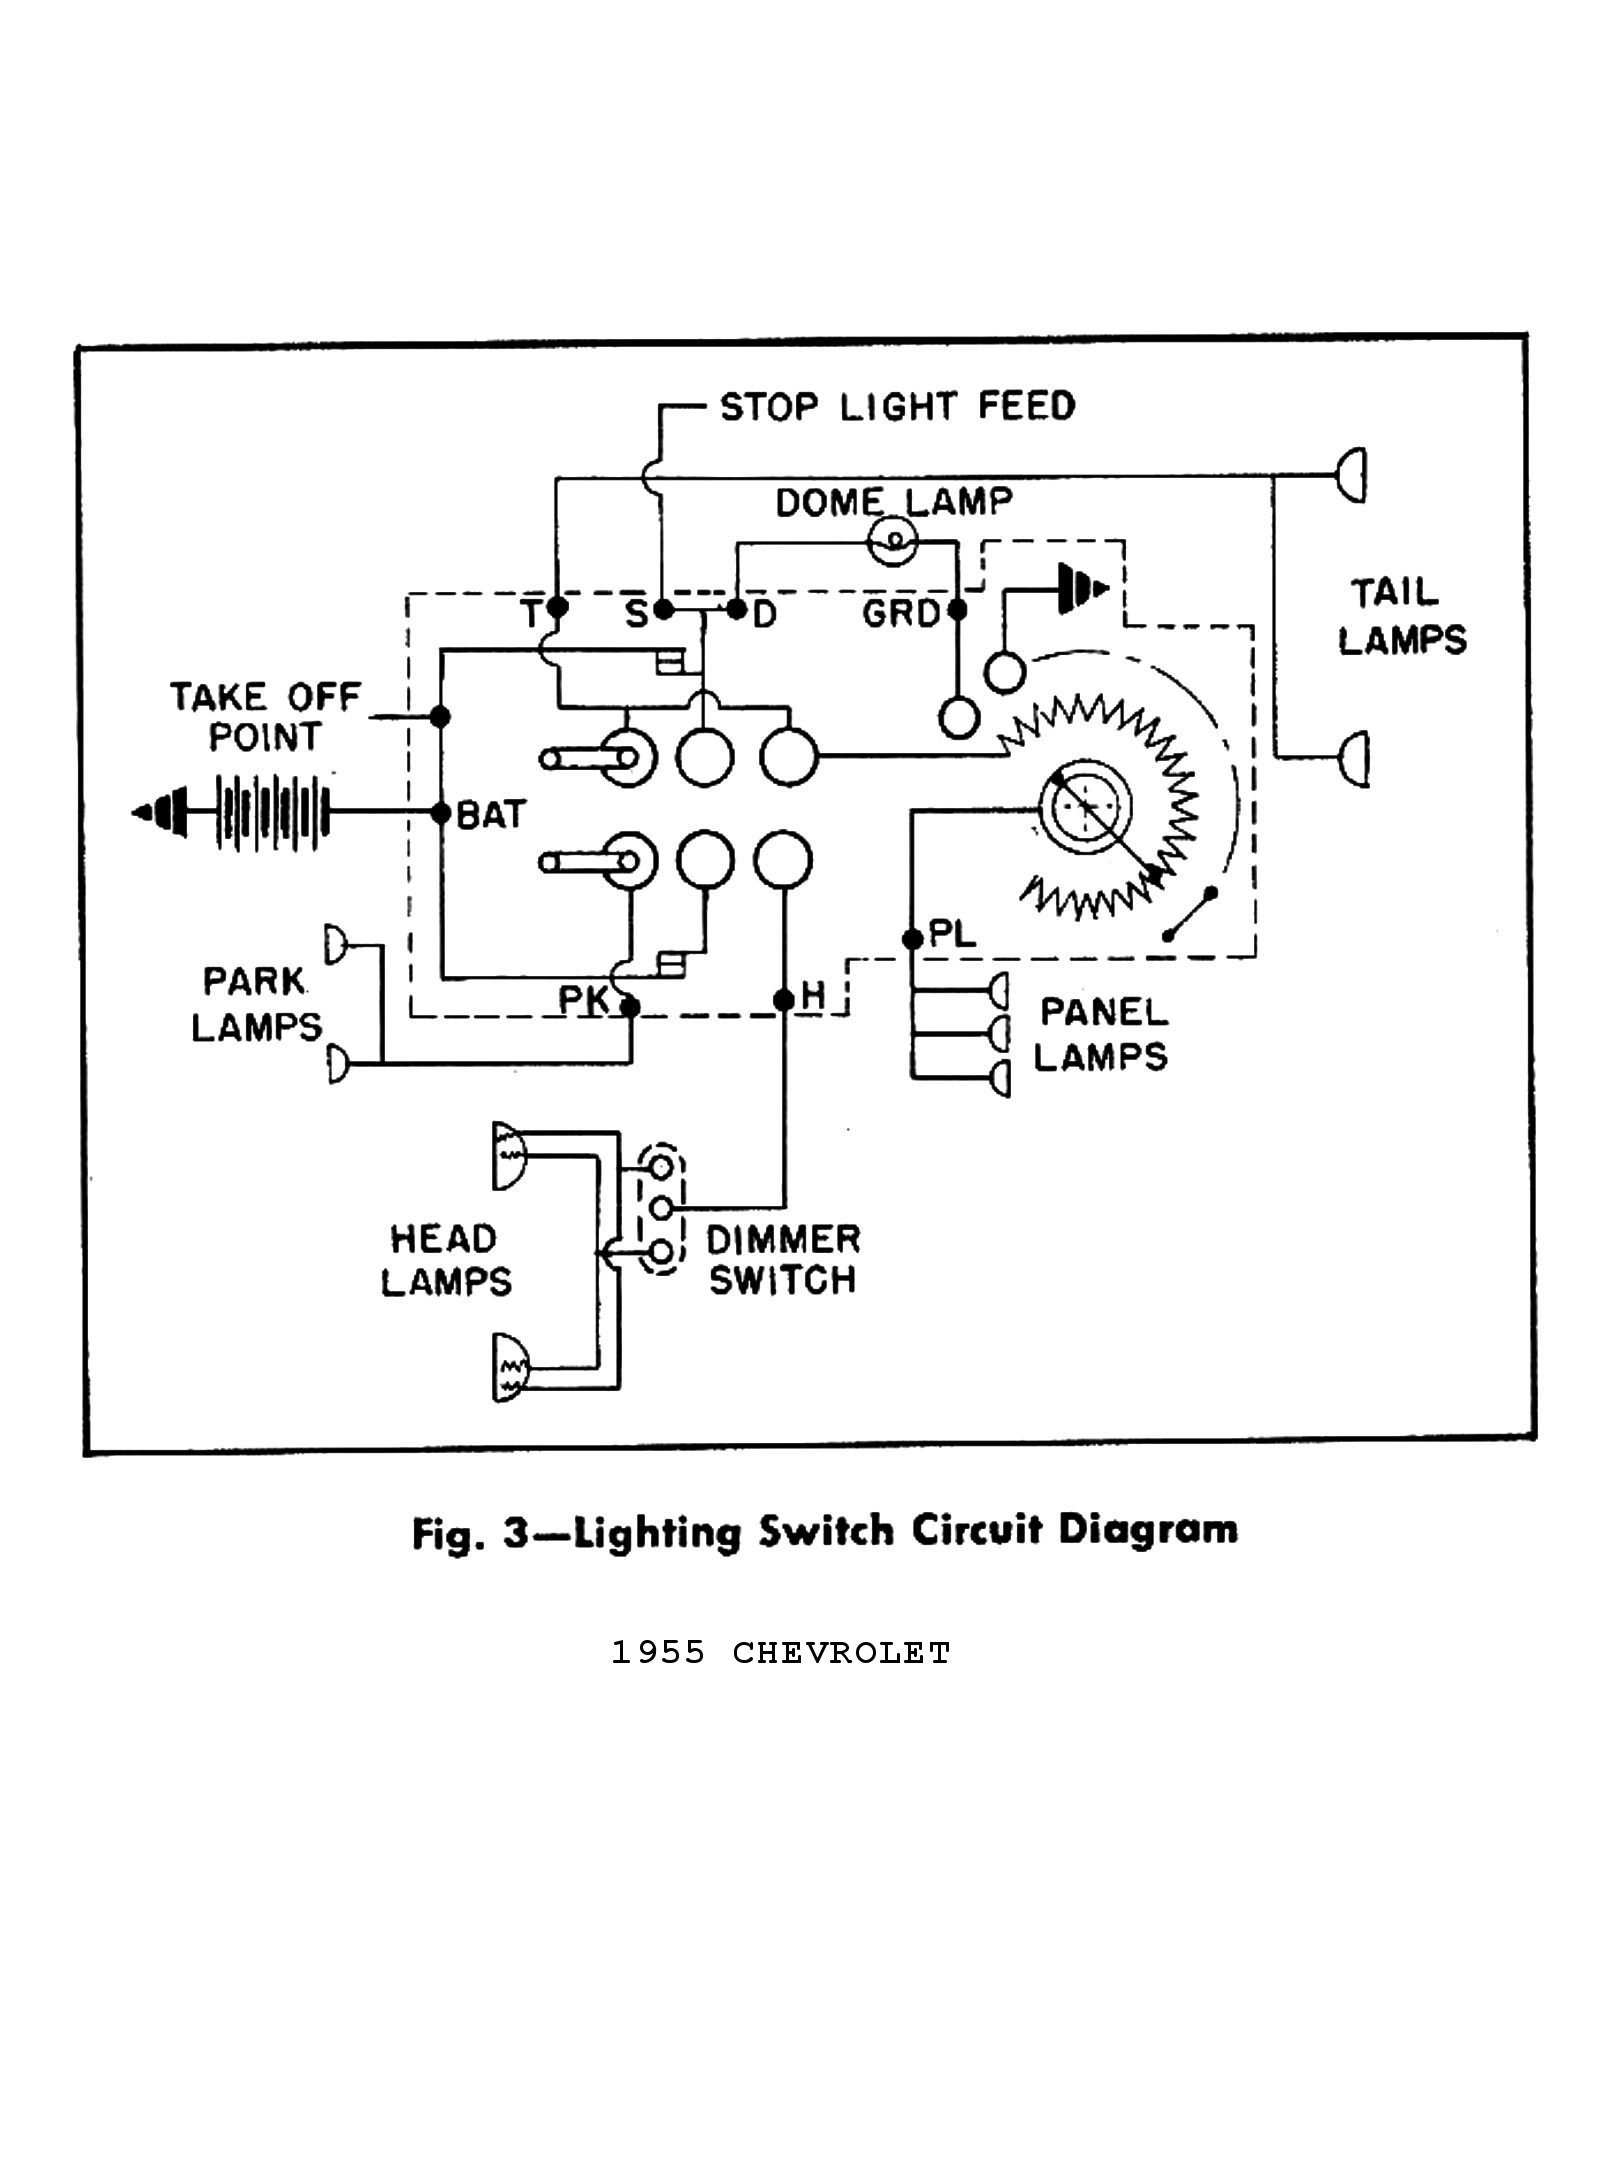 1950 Chevy Truck Ignition Wiring Data Wiring Schema 1957 Chevy Ignition  Switch Diagram Wiring Diagram For 1957 Chevy Truck